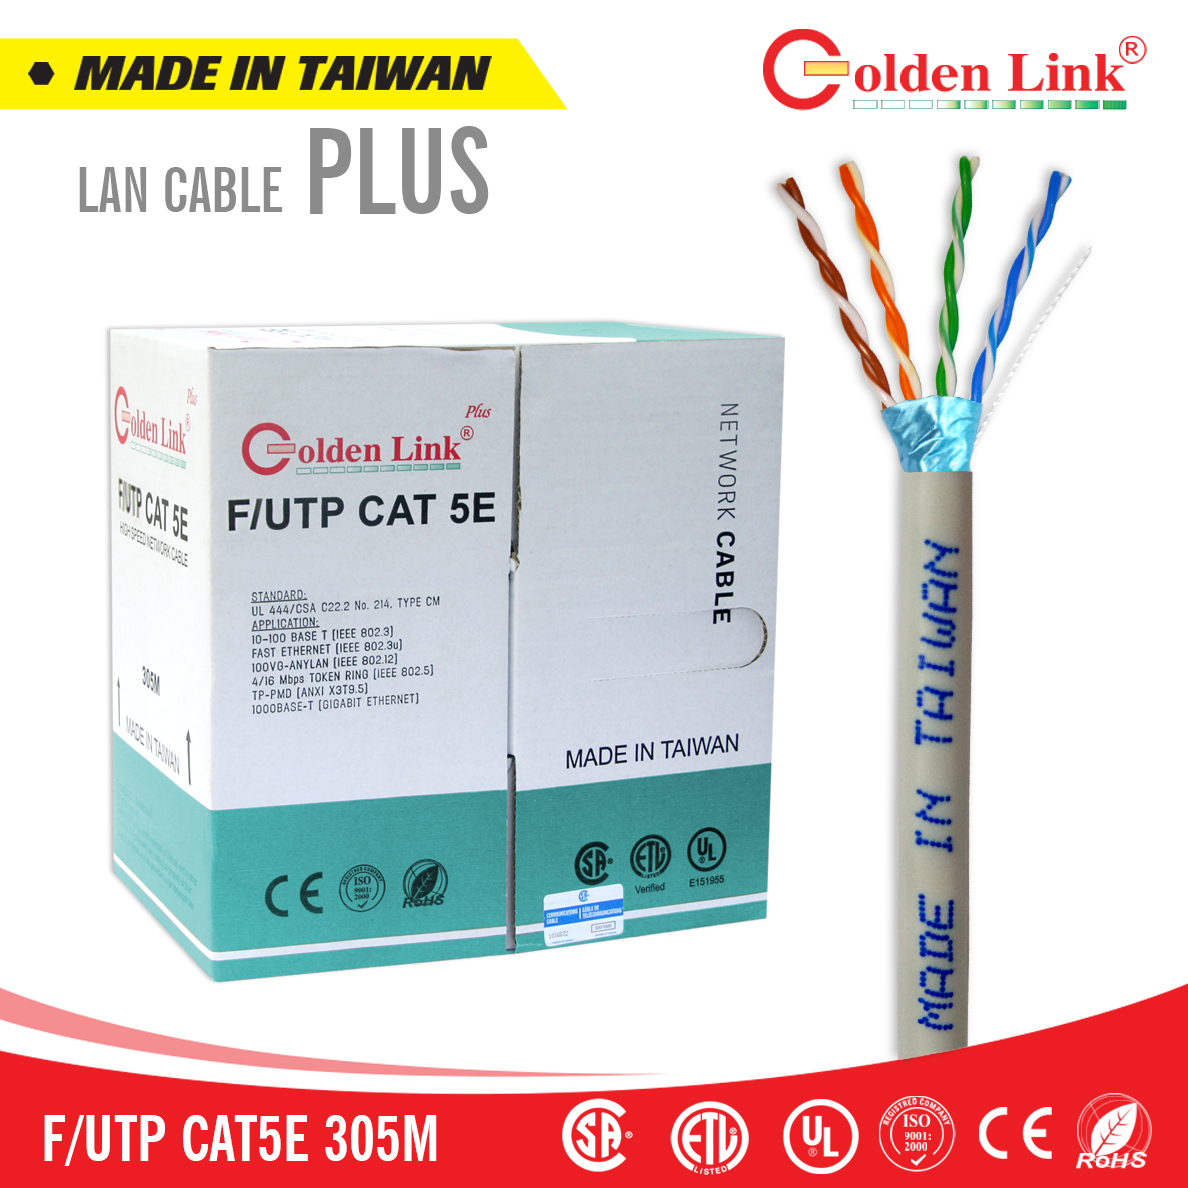 Cáp mạng Golden Link Plus F/UTP CAT 5E MADE IN TAIWAN